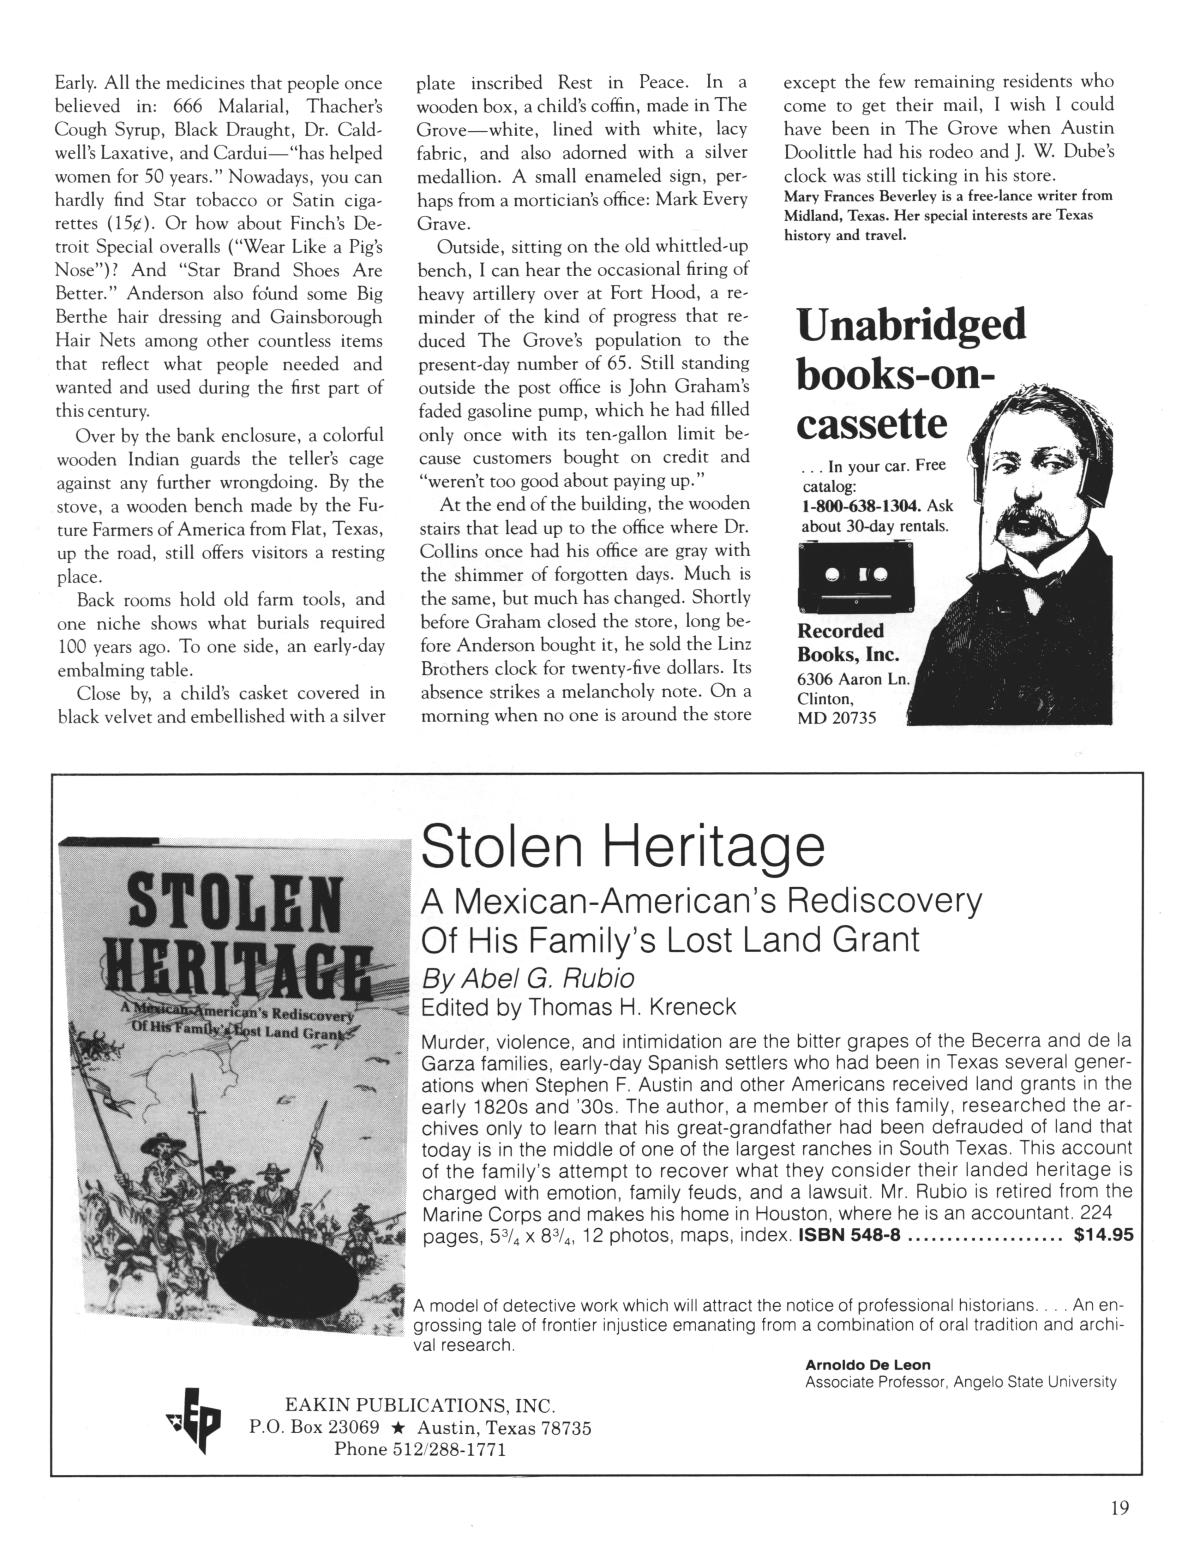 Heritage, Volume 5, Number 2, Summer 1987                                                                                                      19